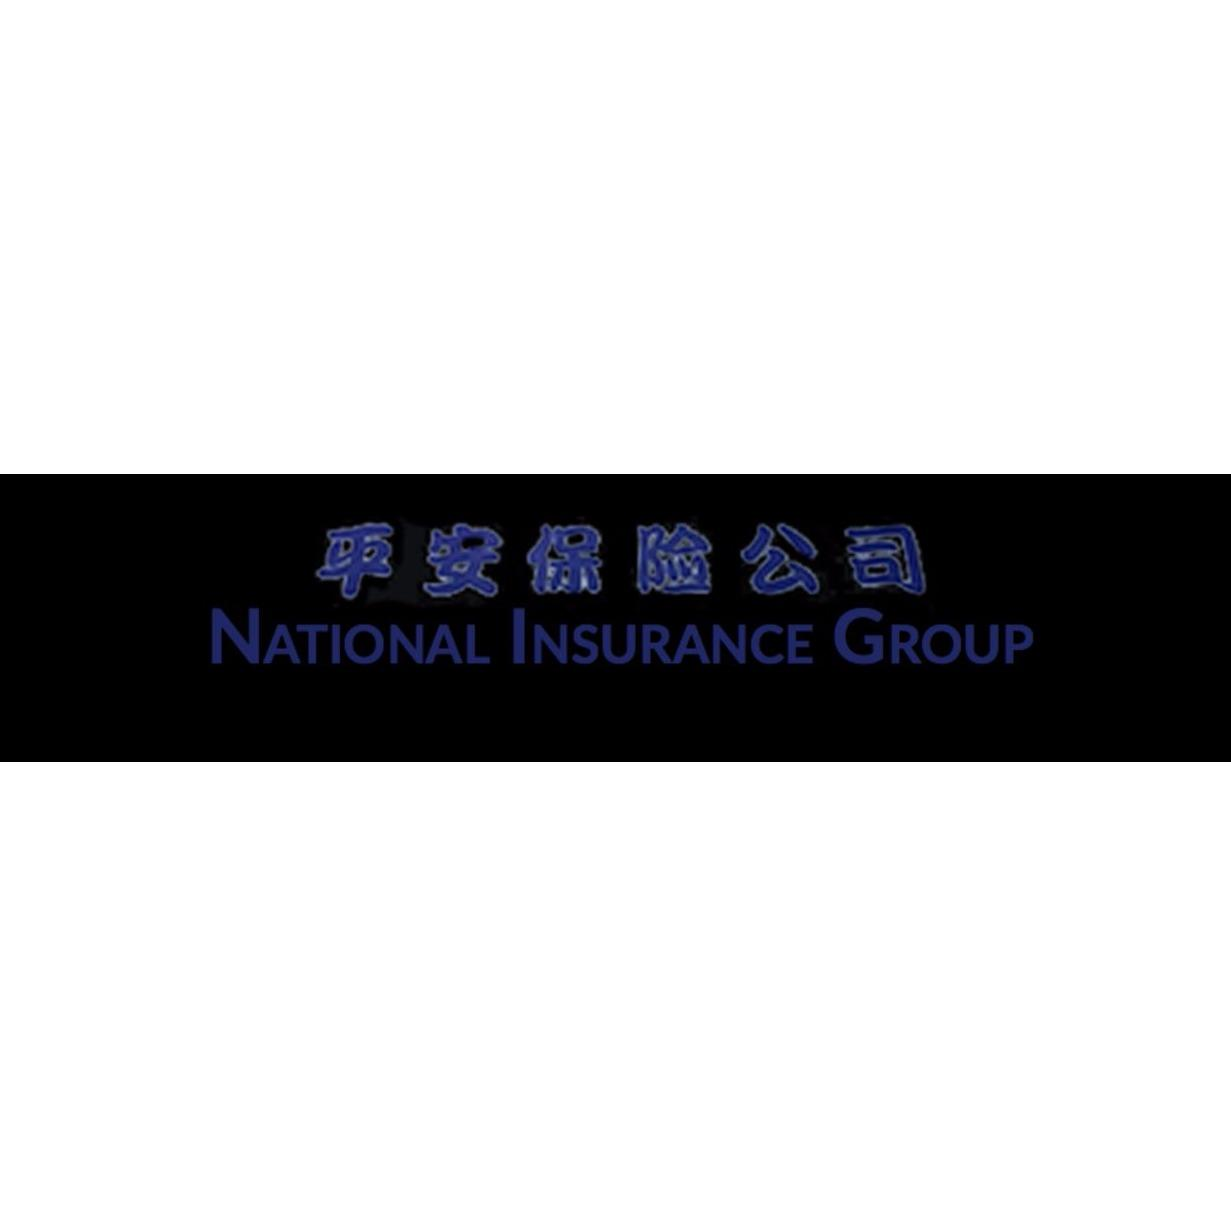 National Insurance Group